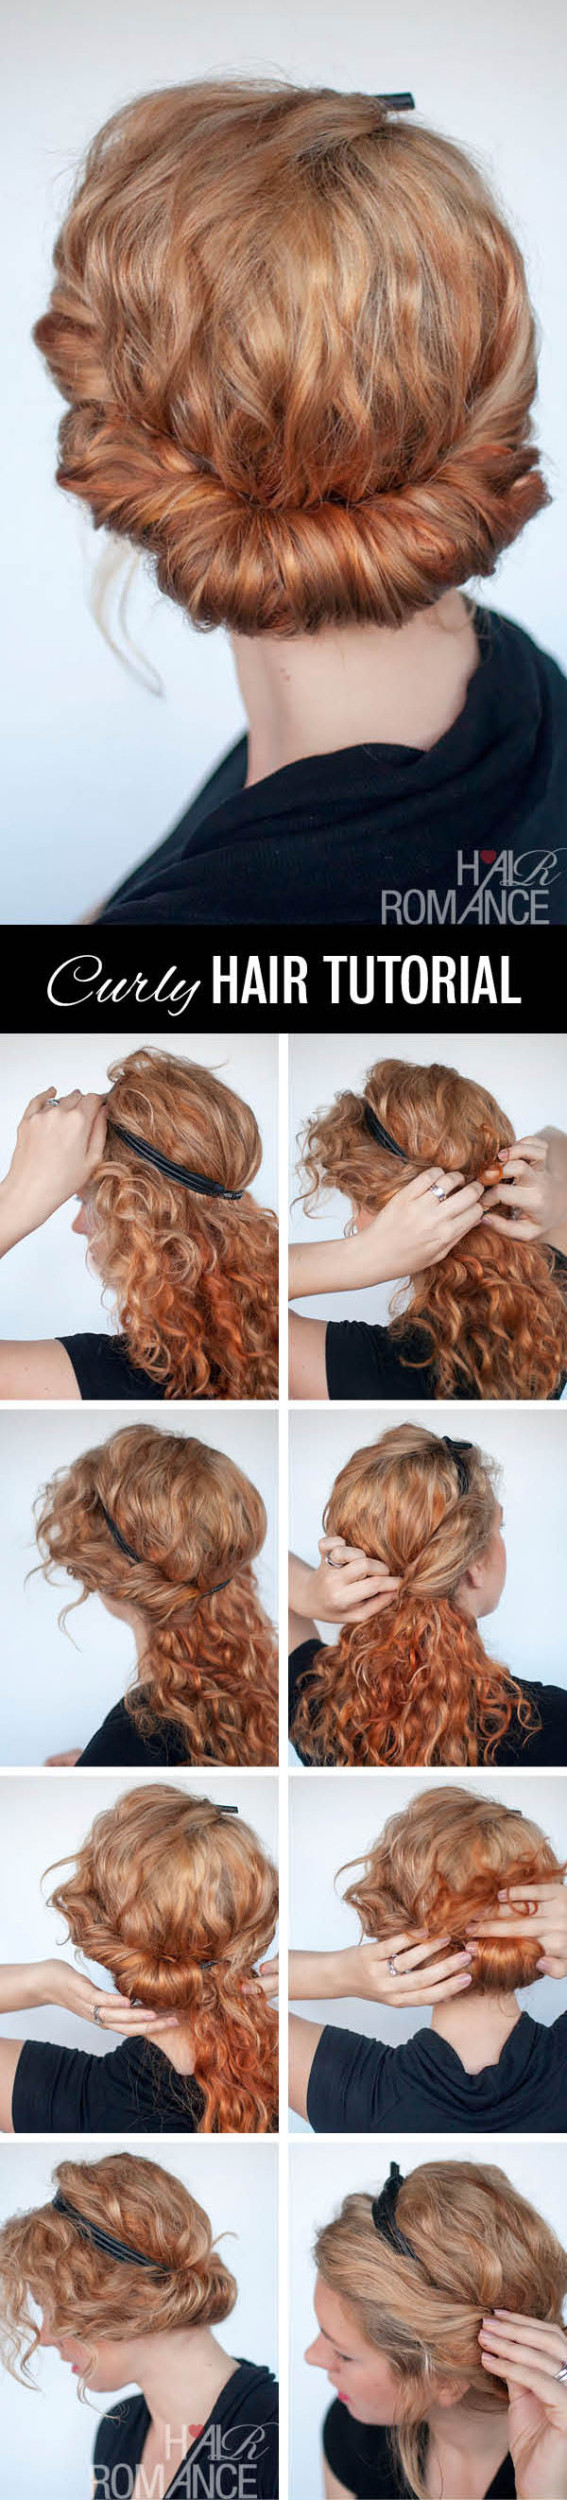 14 Simple Step By Step Tutorials For A Perfect Hairstyle In